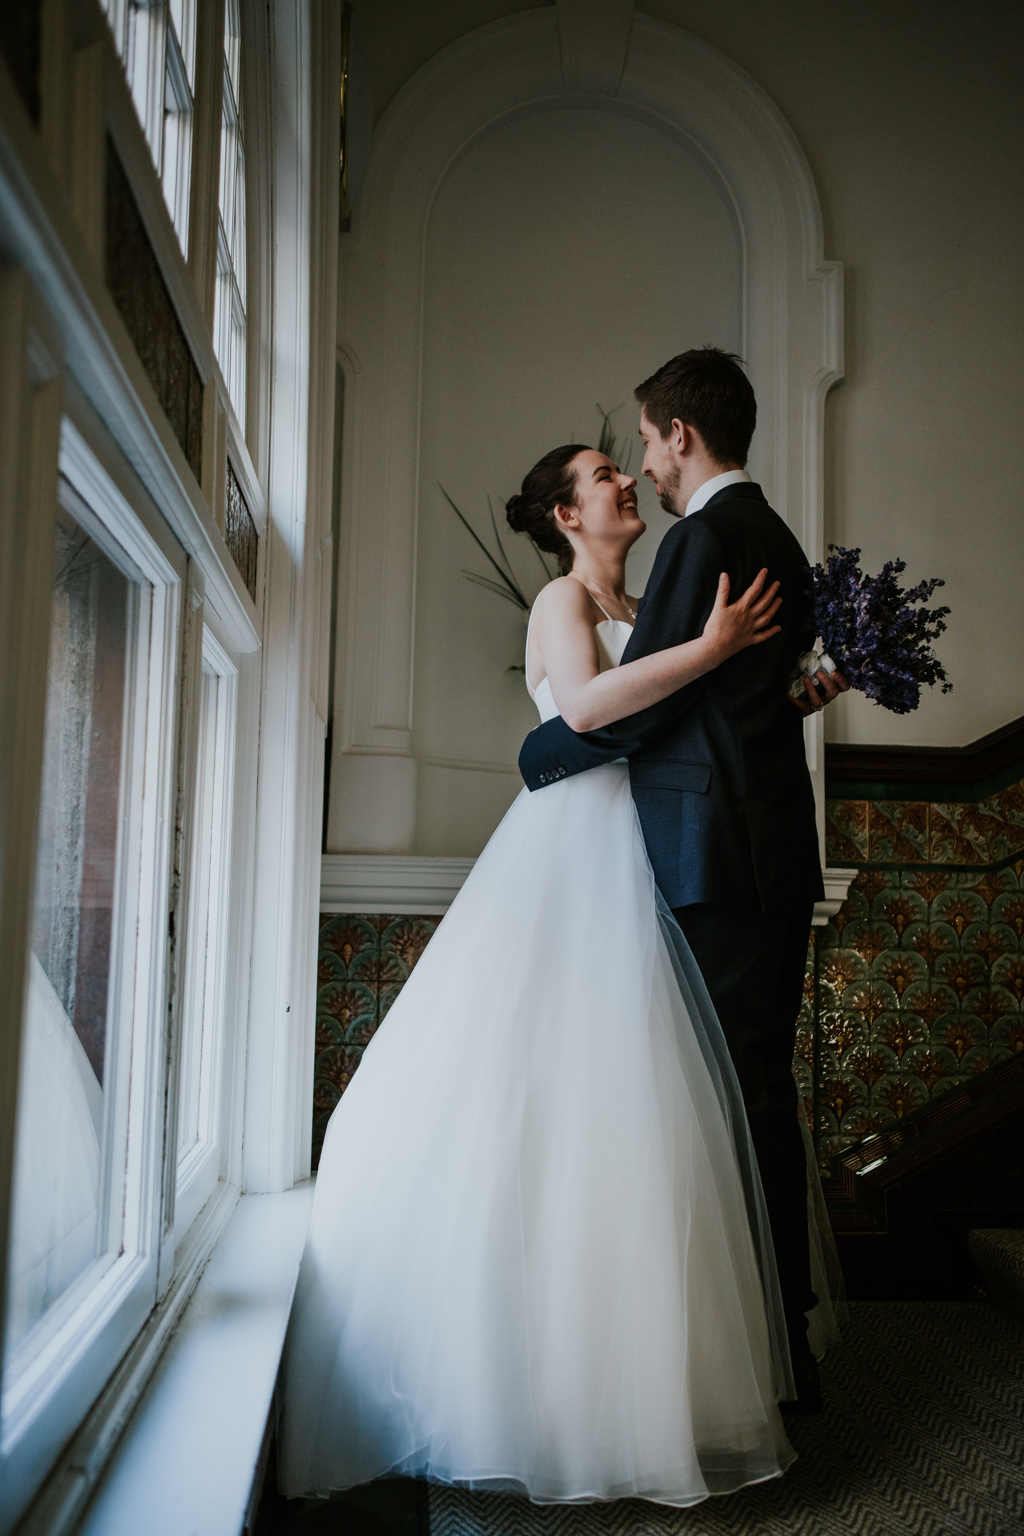 Bride and groom romantic portrait at the registry office in Glasgow